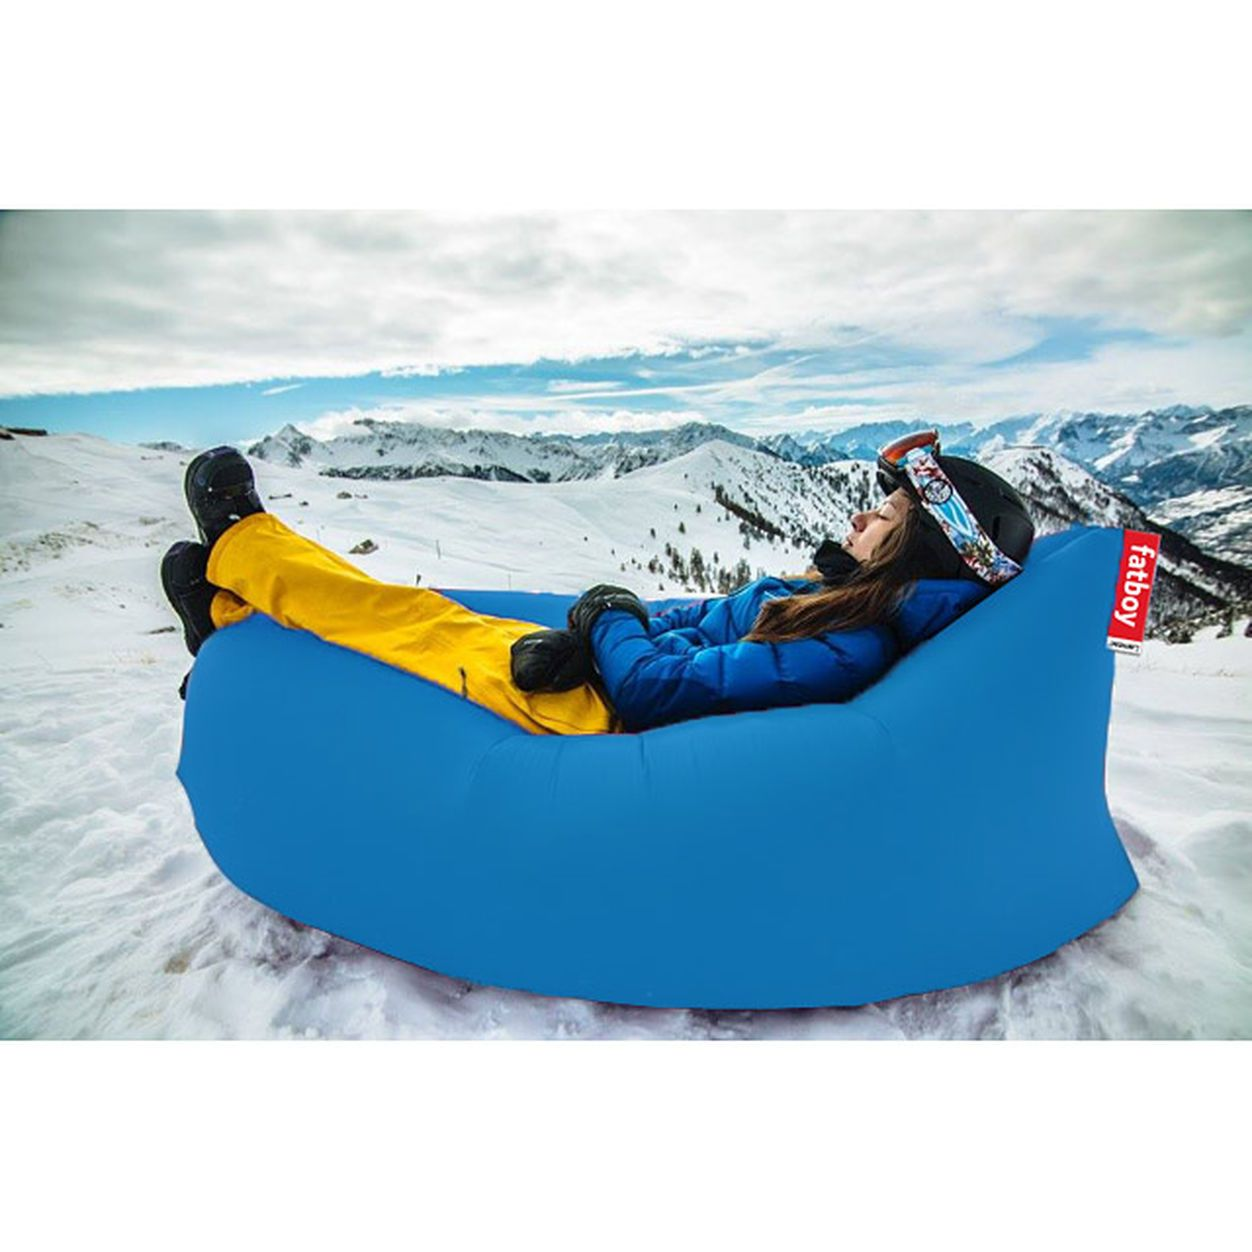 Lamzac C The Original In Color Inflatable Couch Lamzac Hangout Inflatable Furniture